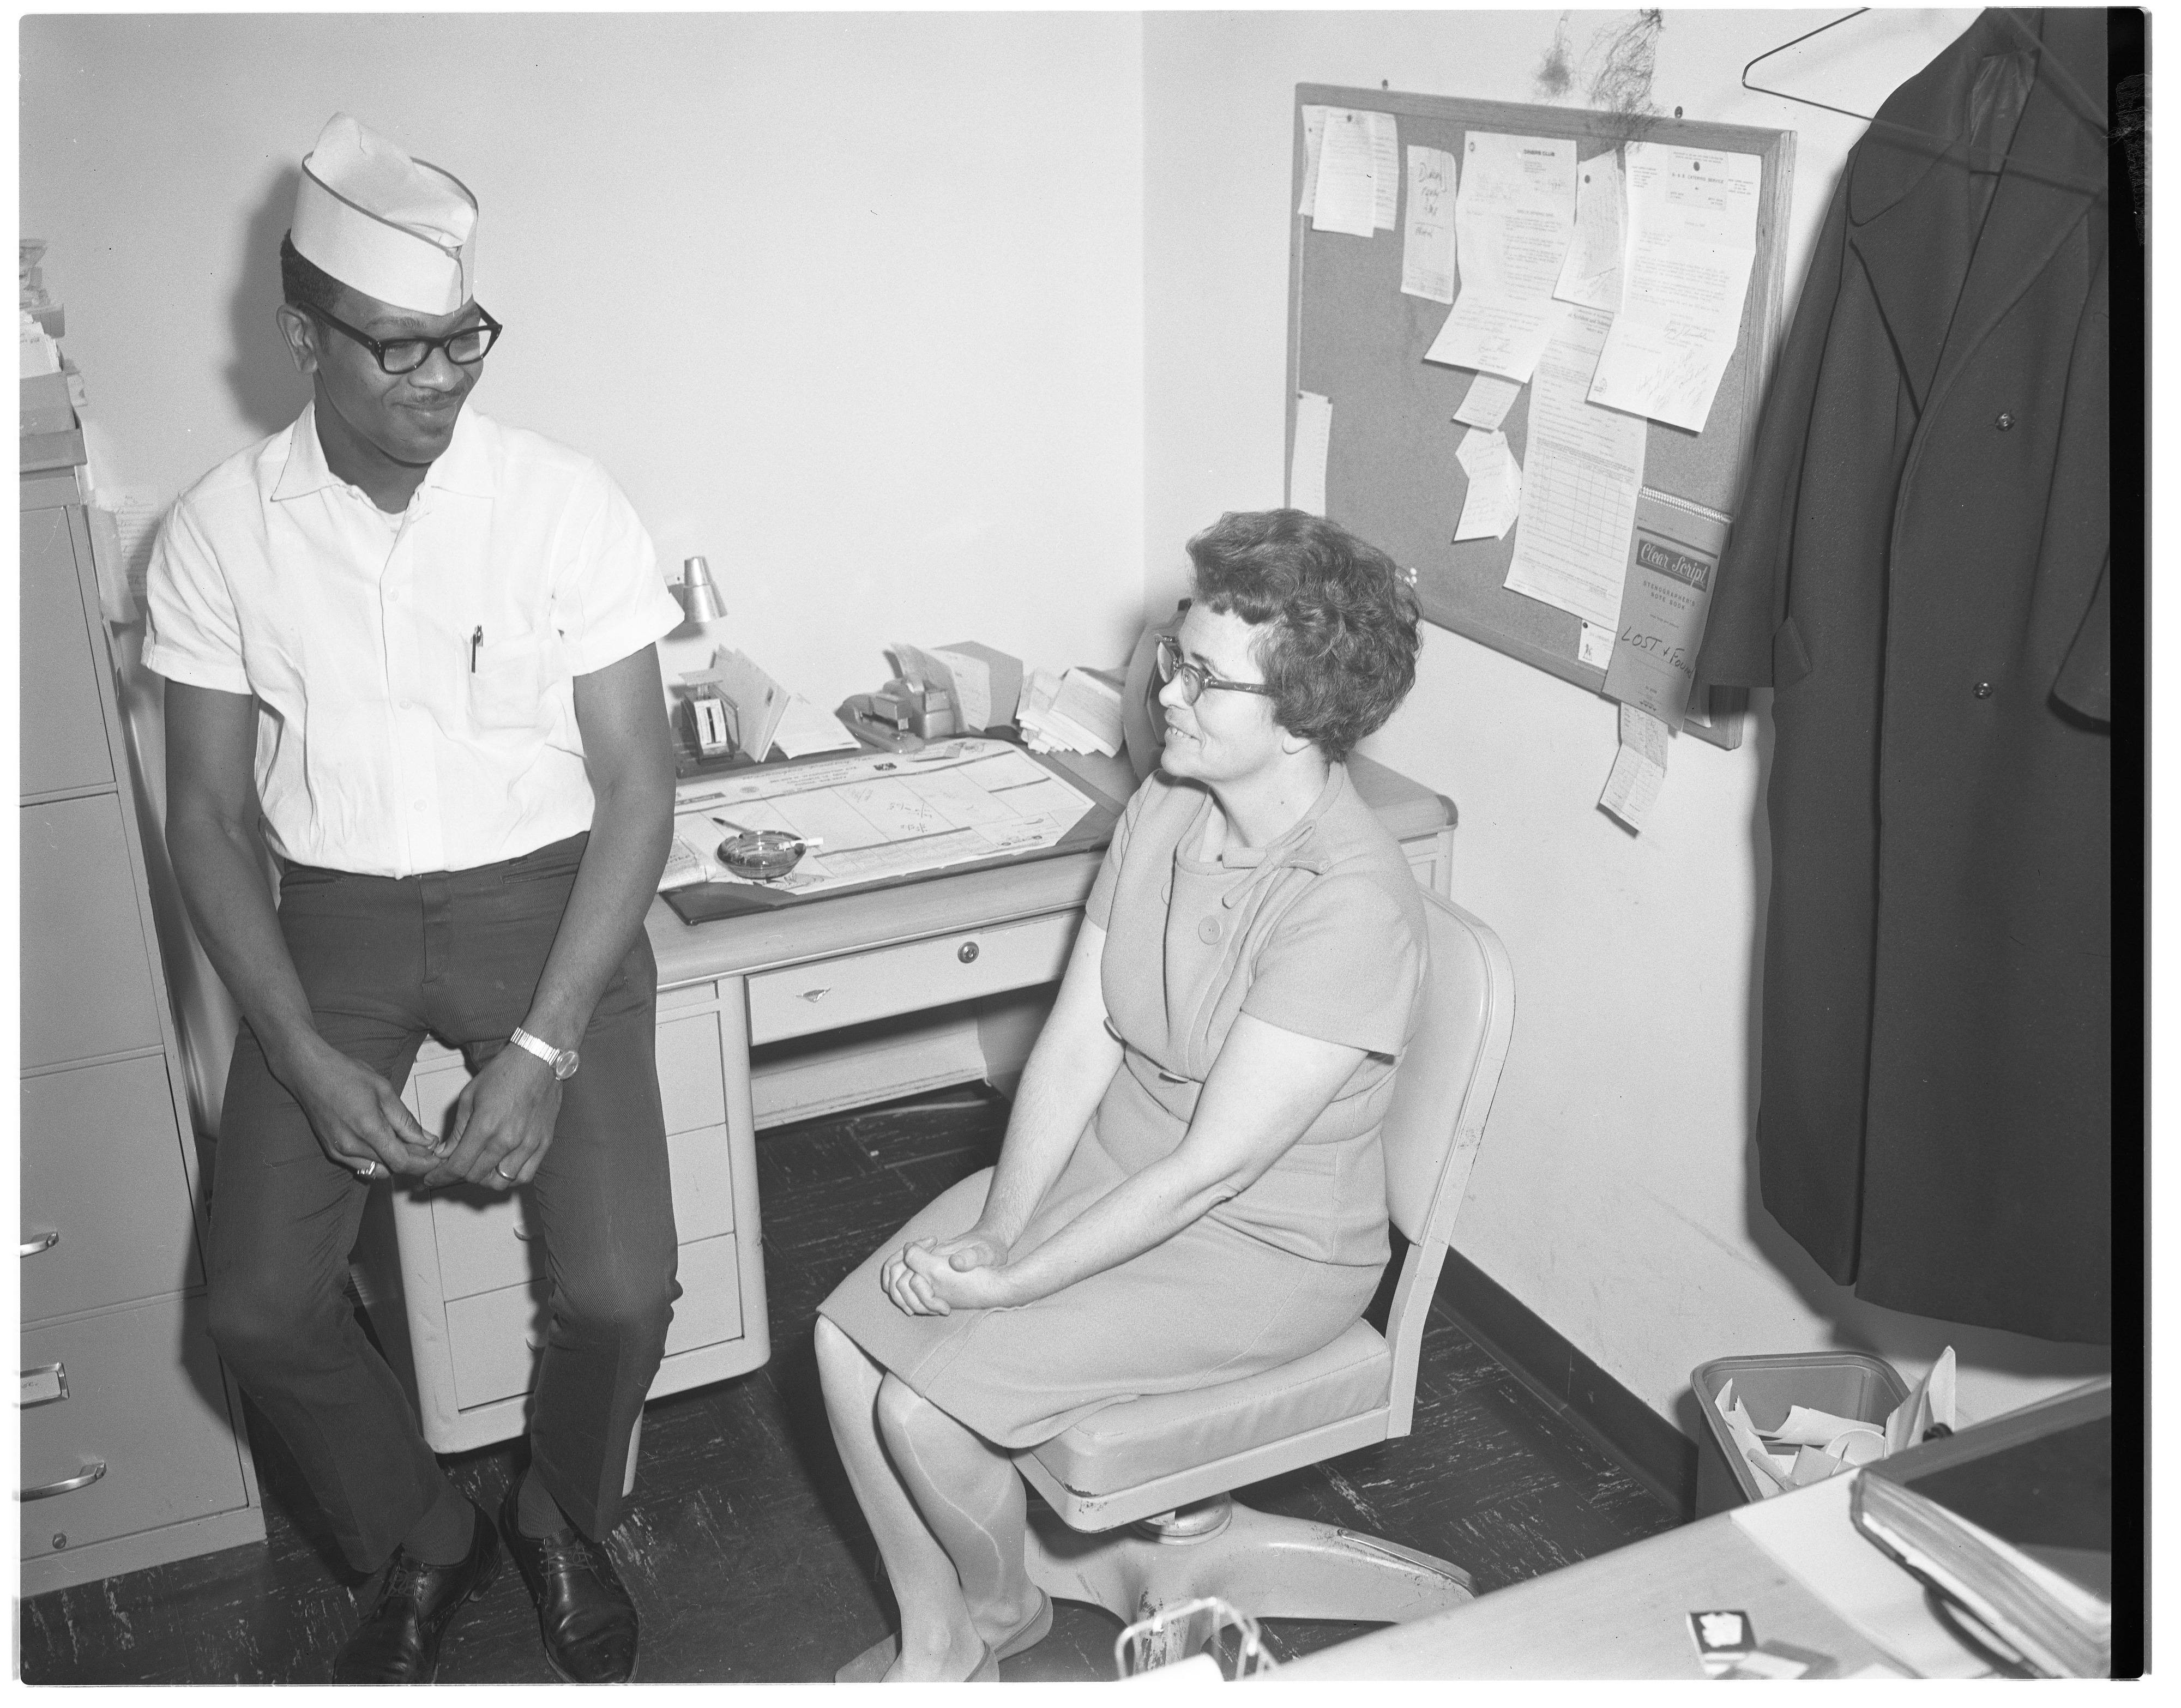 Holiday Inn West Employees Discuss Robbery, October 1966 image